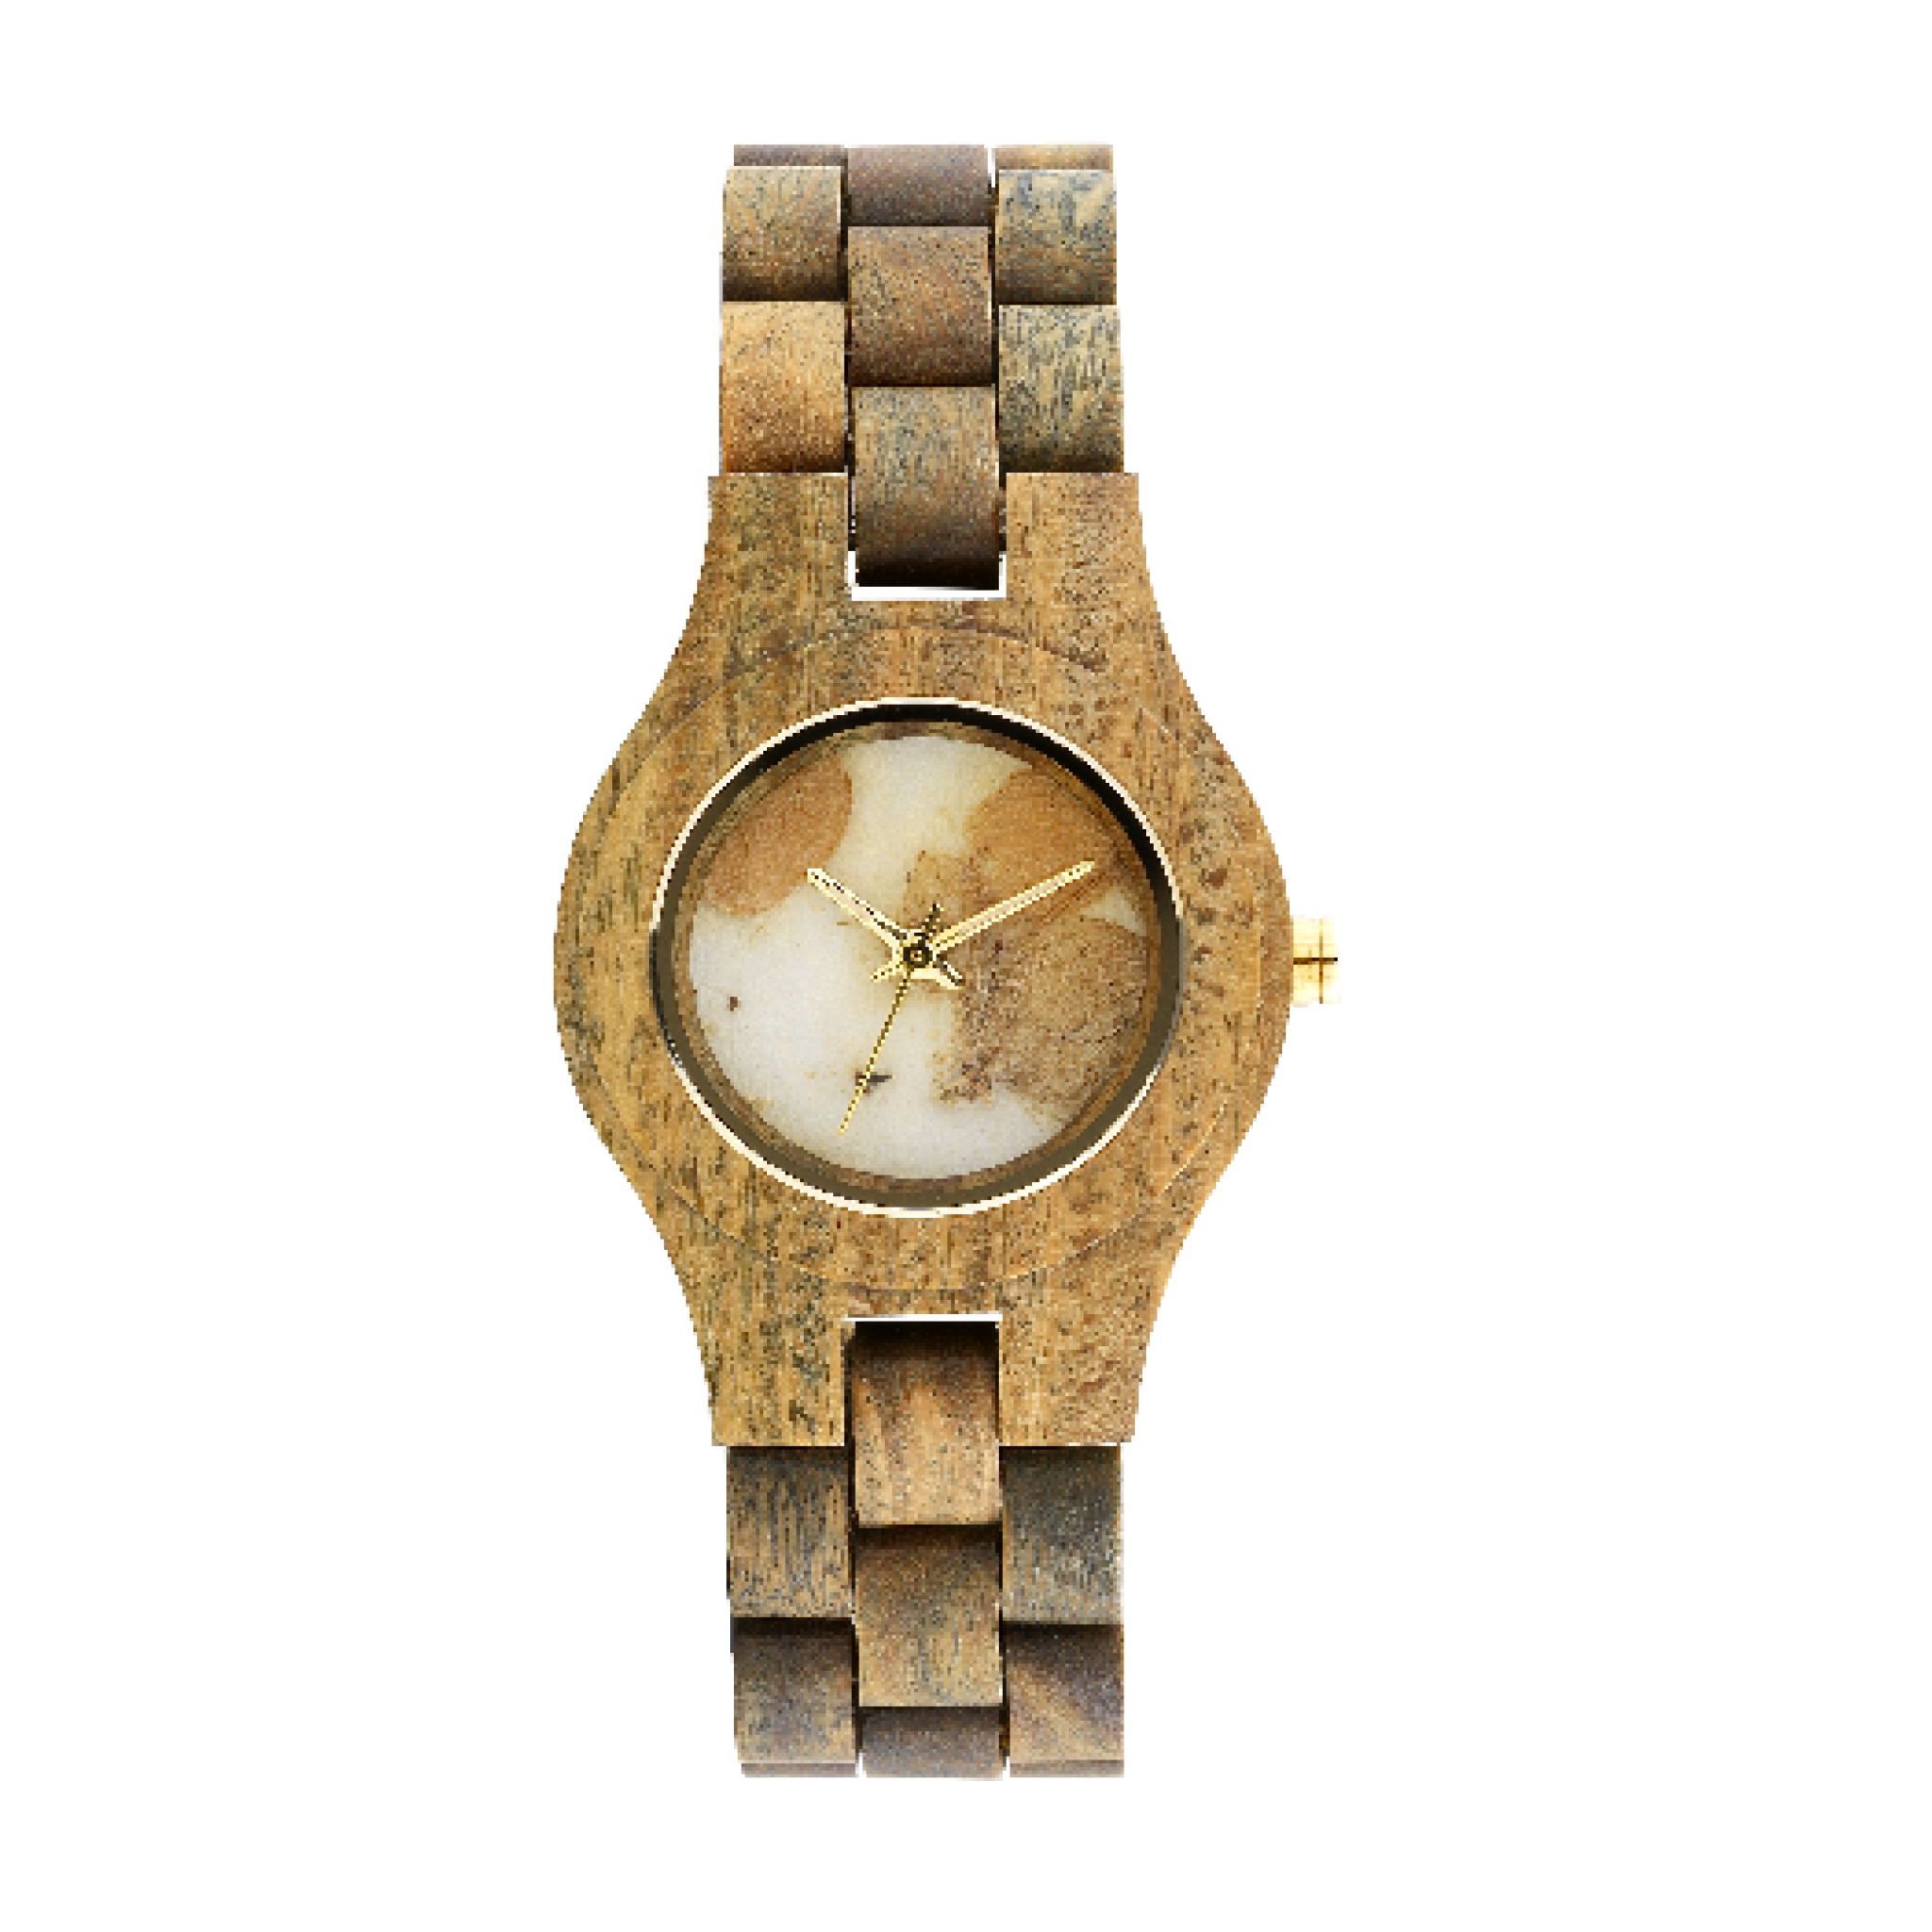 Criss Hortensia Army Wood Watch